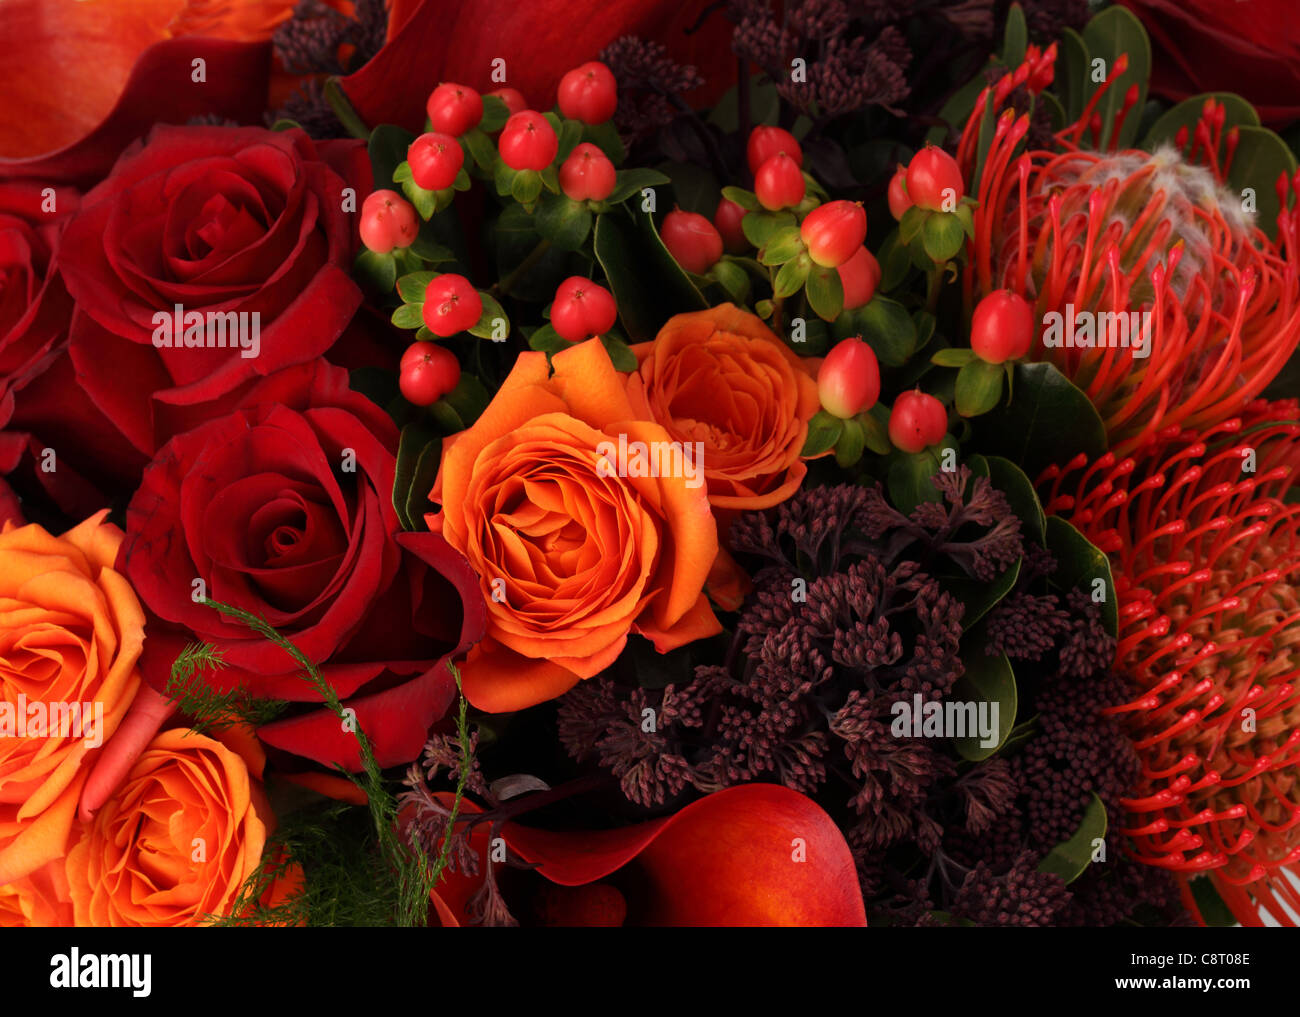 A close up of a colorful bouquet of flowers red orange roses red a close up of a colorful bouquet of flowers red orange roses red callas red proteas unknown purple sprays izmirmasajfo